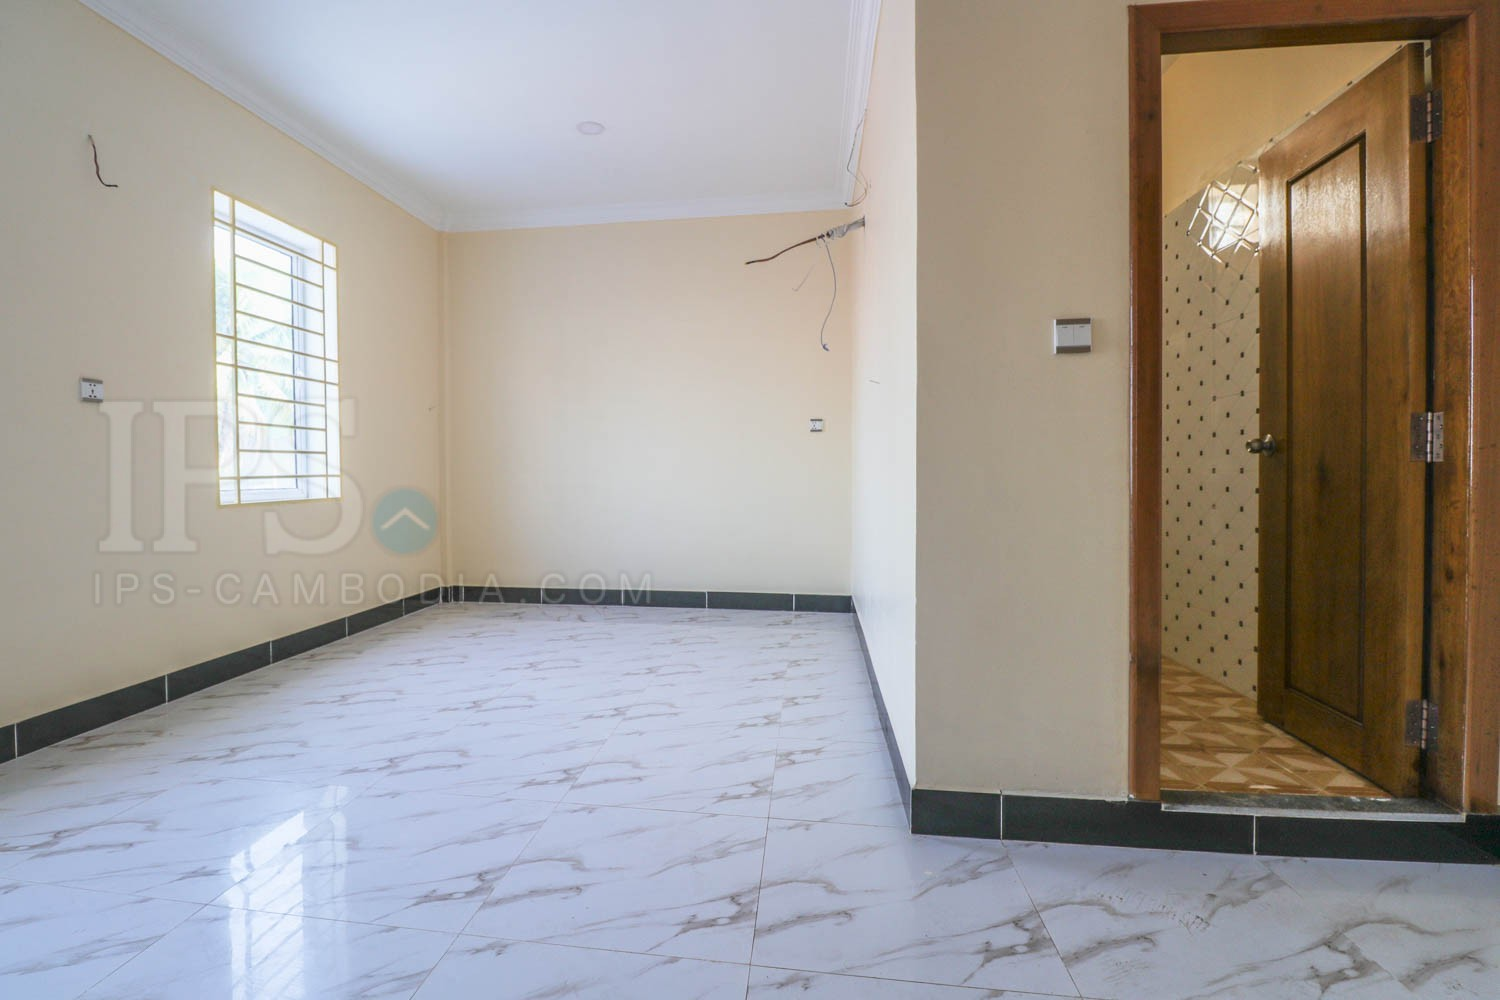 10 Bedrooms Apartment For Rent - Sihanoukville